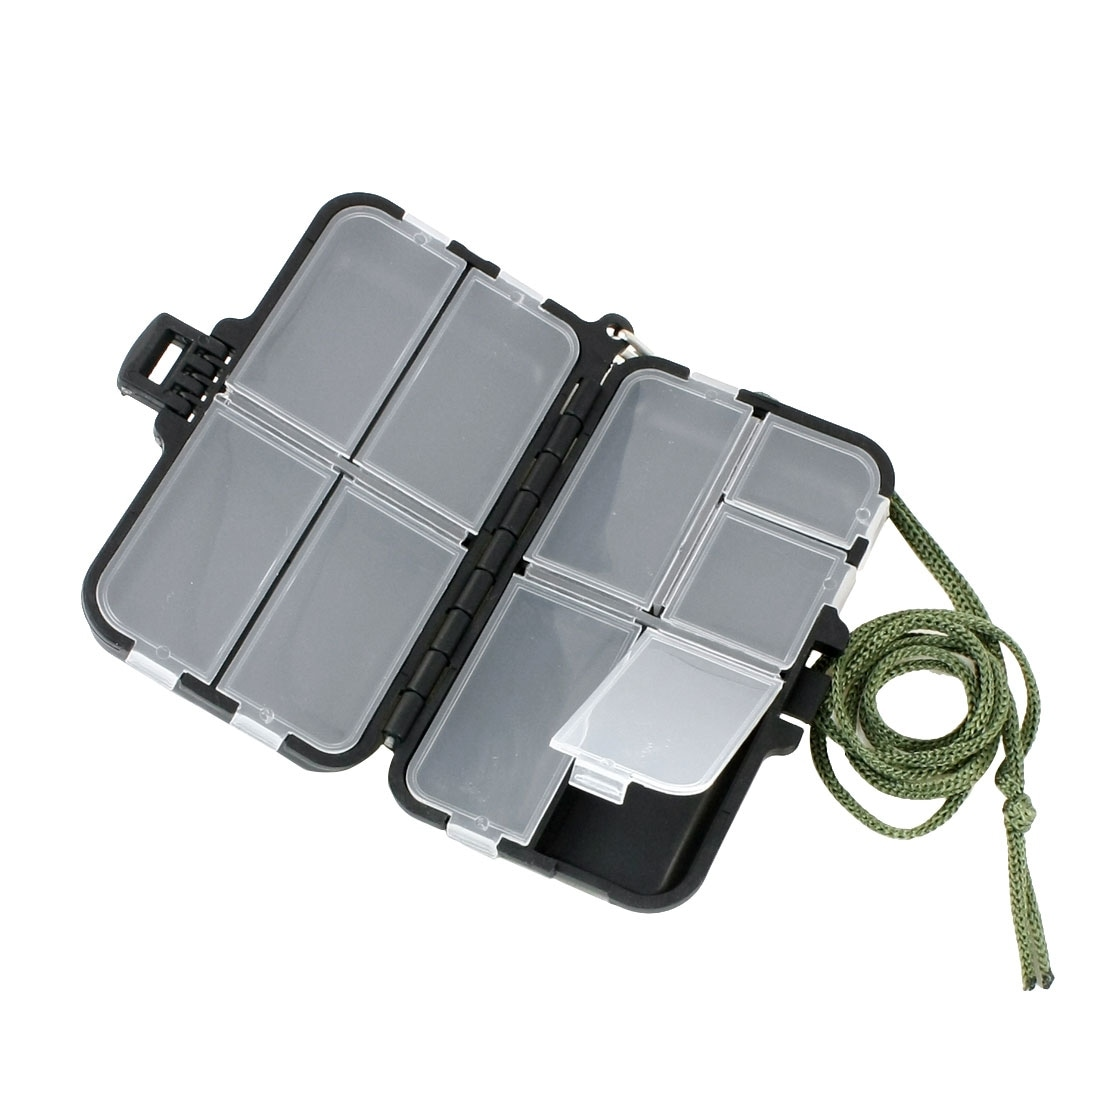 Unique Bargains 9 Compartments Waterproof Fishing Tackle Box Hook Lure Case  with Strap